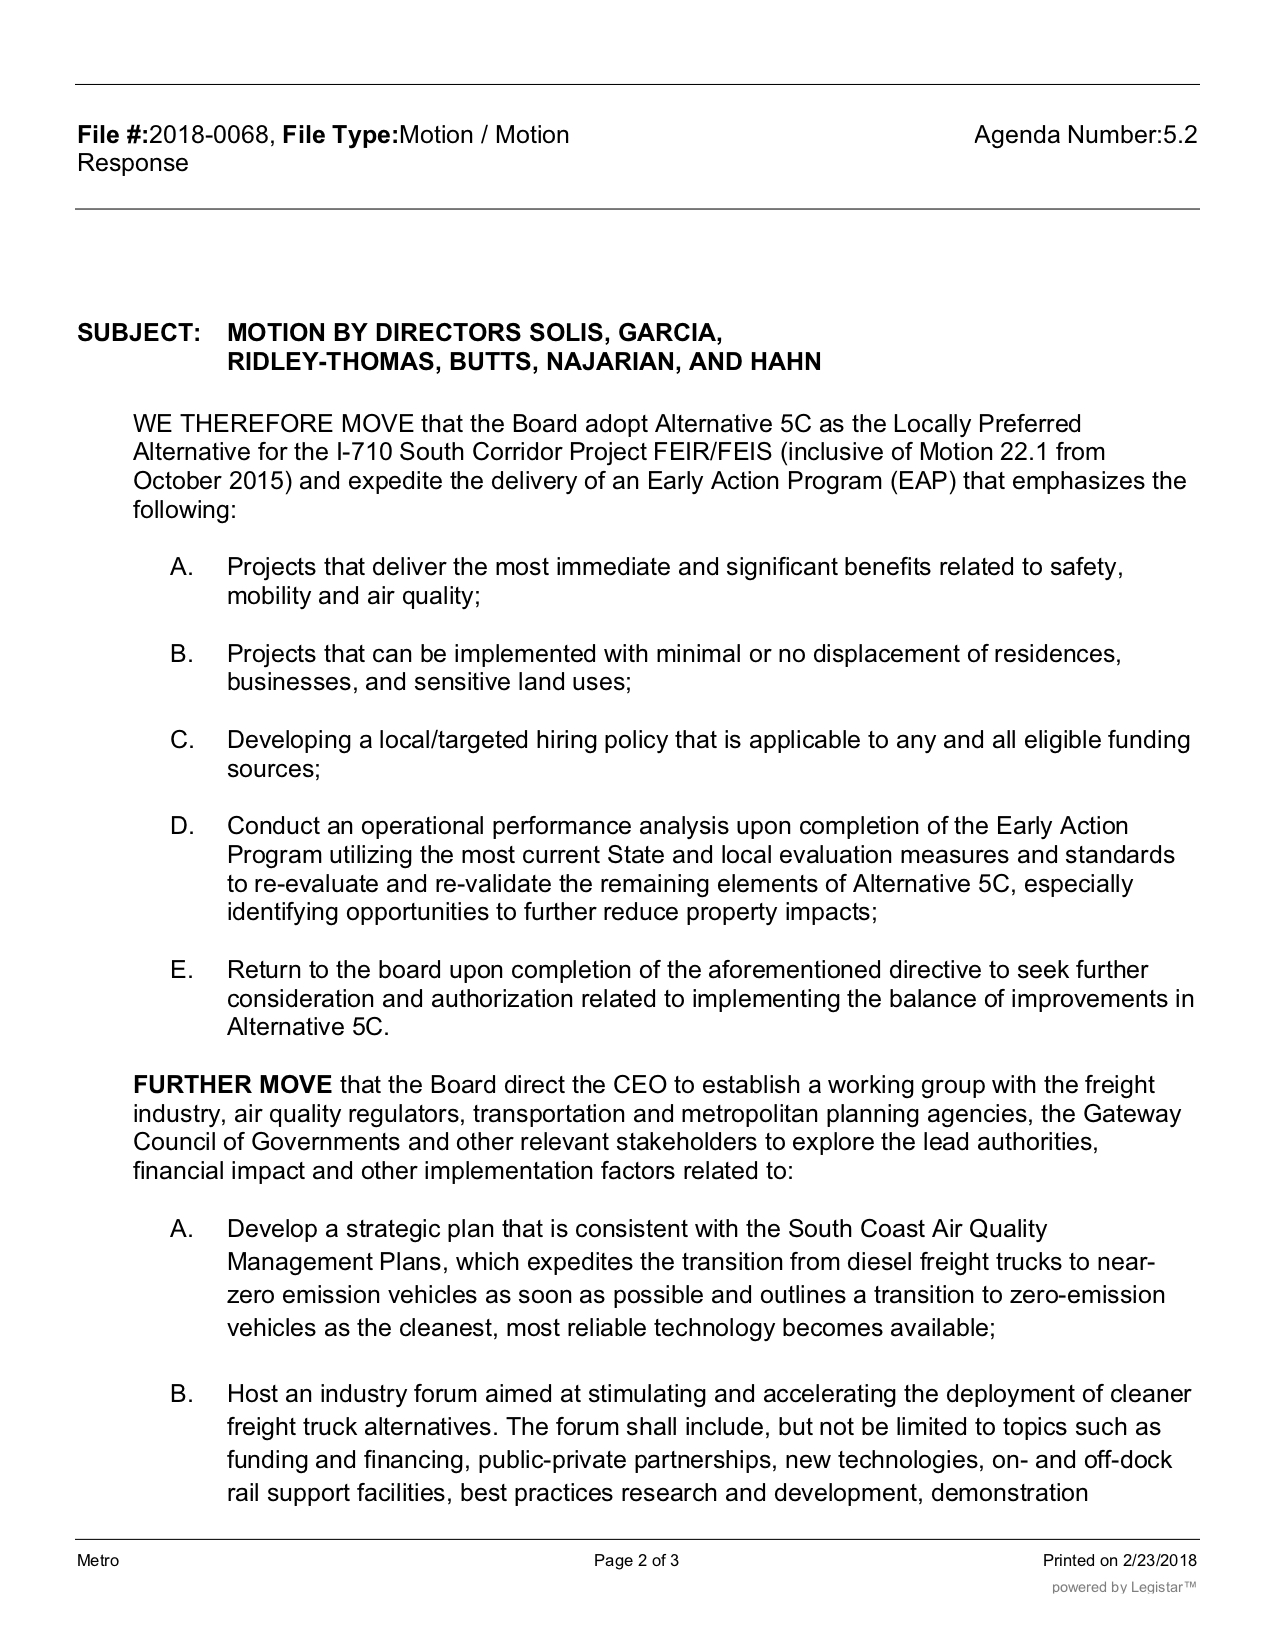 Agenda for Thursday's Metro Board meeting, which will